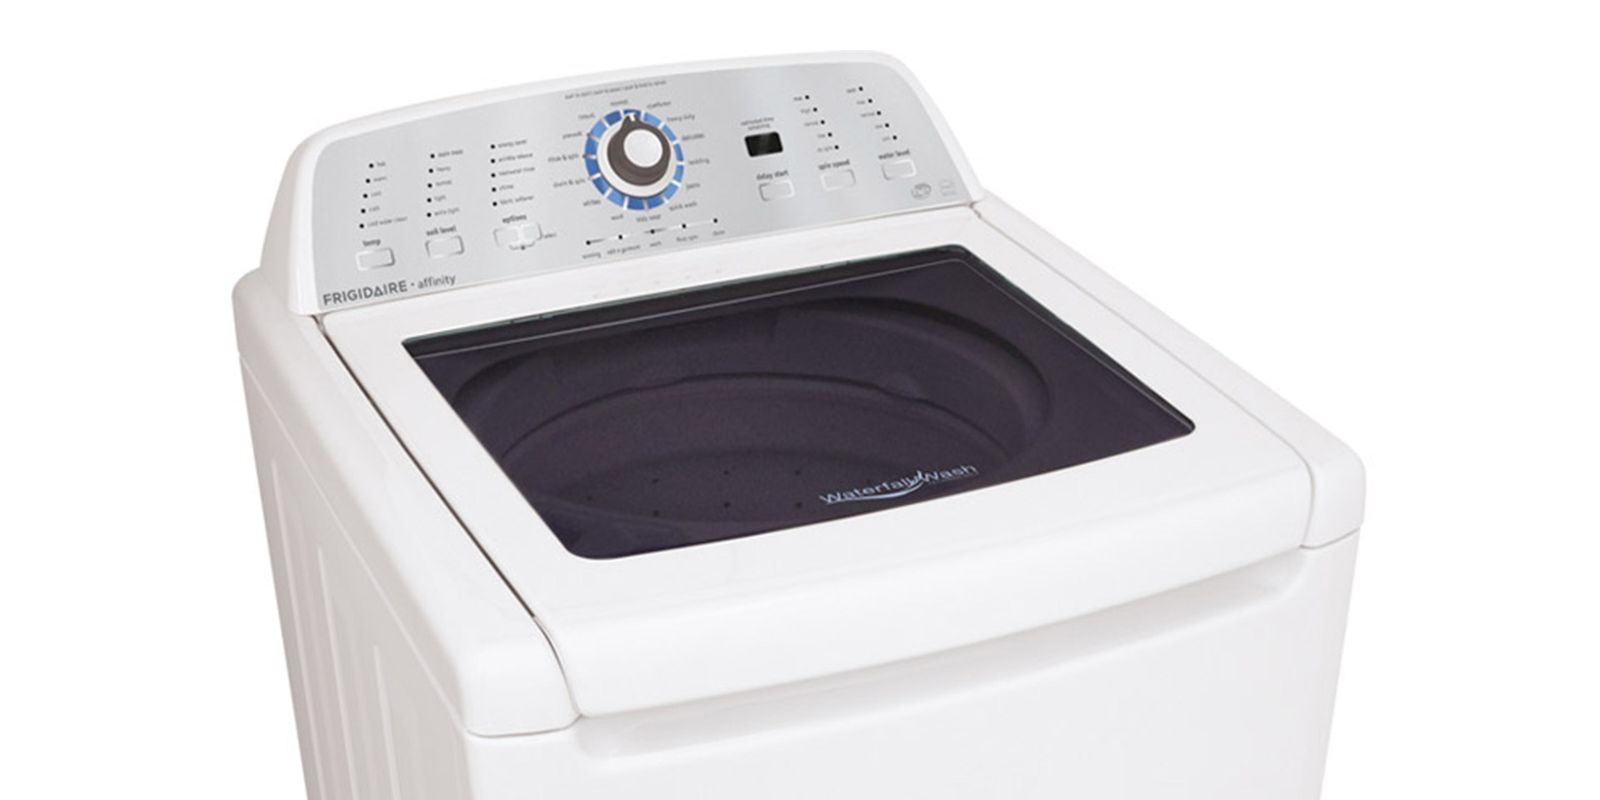 The best top load washer on the market - High Efficiency Top Load Washer Fahe4044mw Review